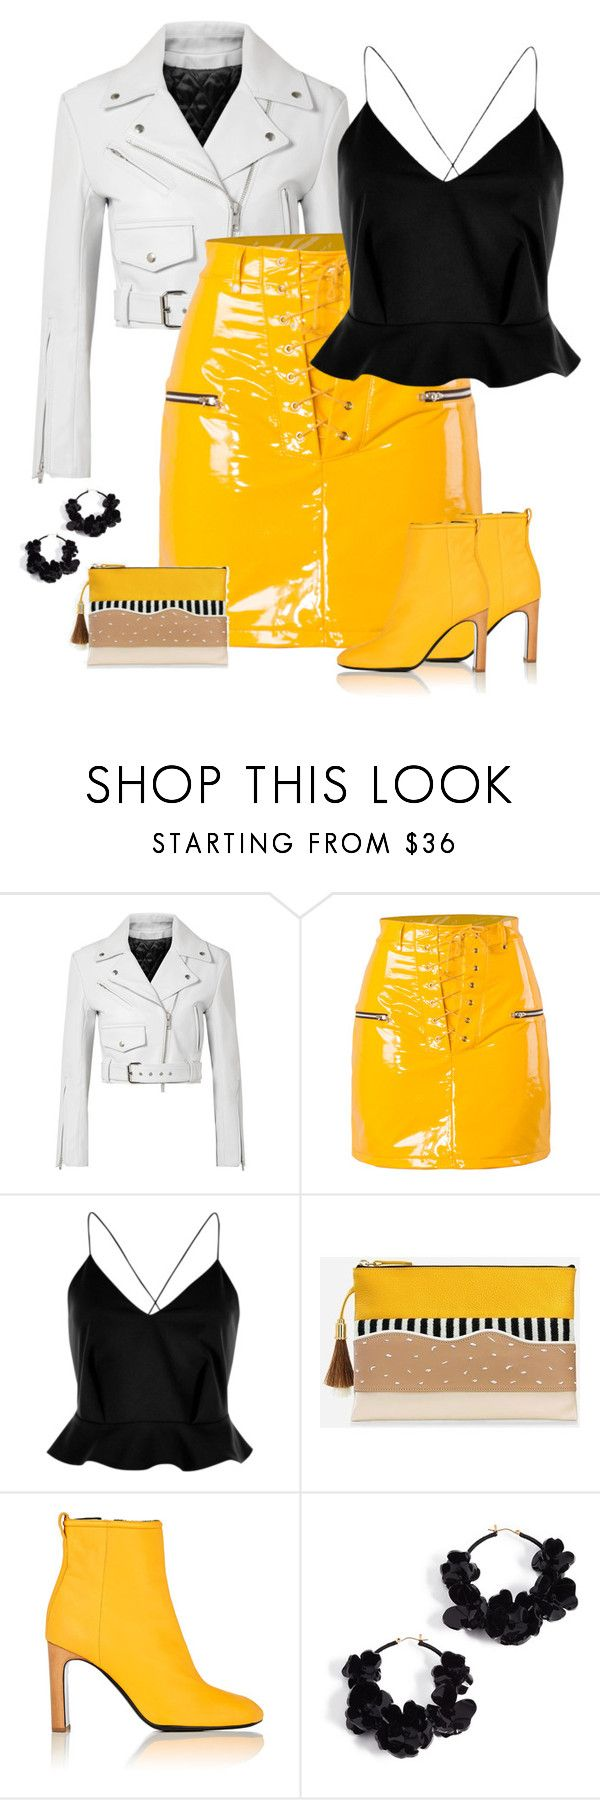 """""""Leather Mini Skirt & Leather Jacket"""" by majezy ❤ liked on Polyvore featuring Calvin Klein 205W39NYC, River Island, rag & bone and Oscar de la Renta"""